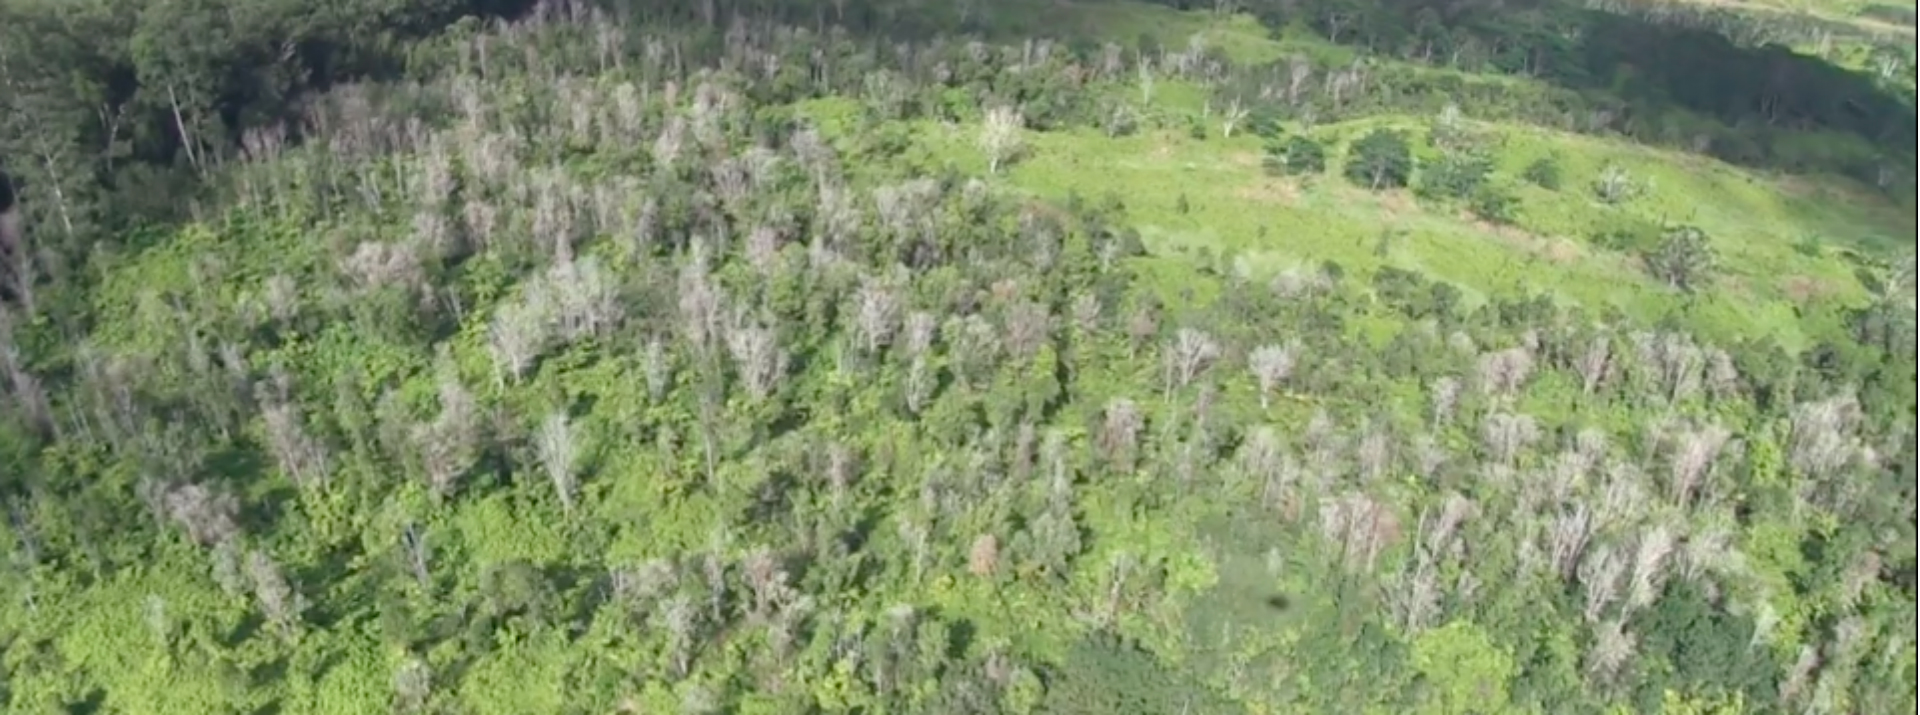 UH Hilo conservation biologists are using high-tech acoustics to study Rapid ʻŌhiʻa Death impact on forest animals